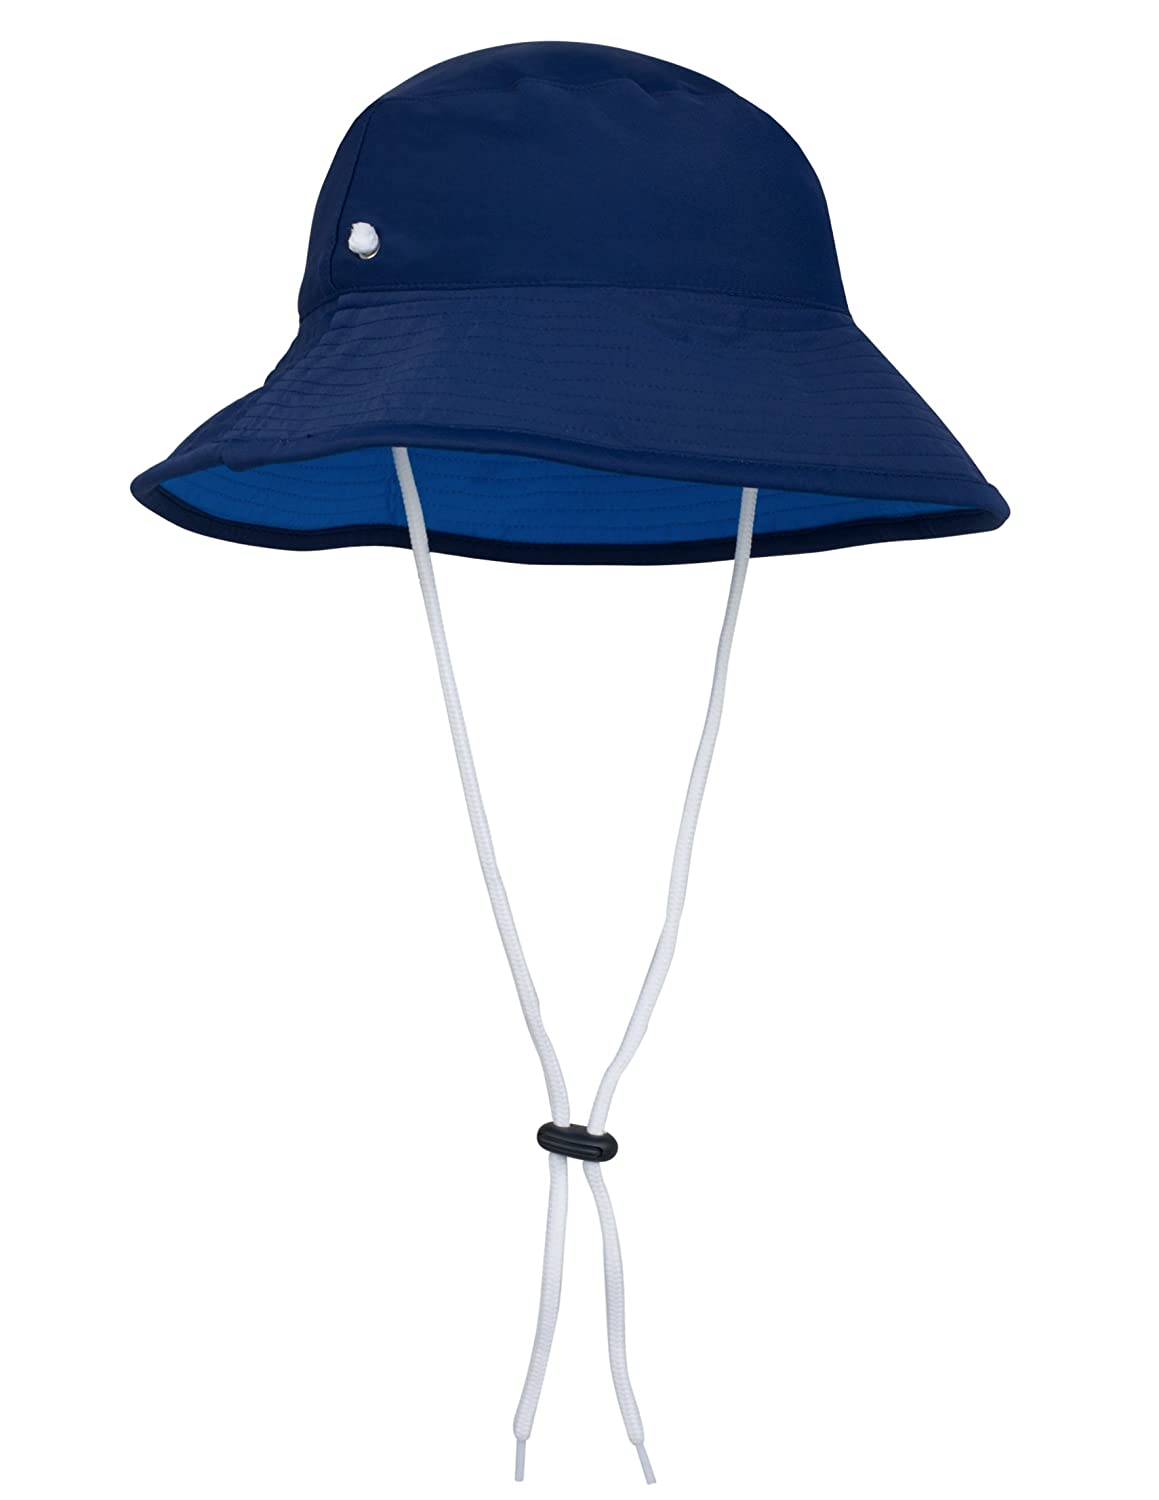 03e256753e073 One side  80% Nylon 20% Spandex. Reverse  100% Nylon Taslan Imported Our  Tuga kids bucket swim hats provide excellent sun protection